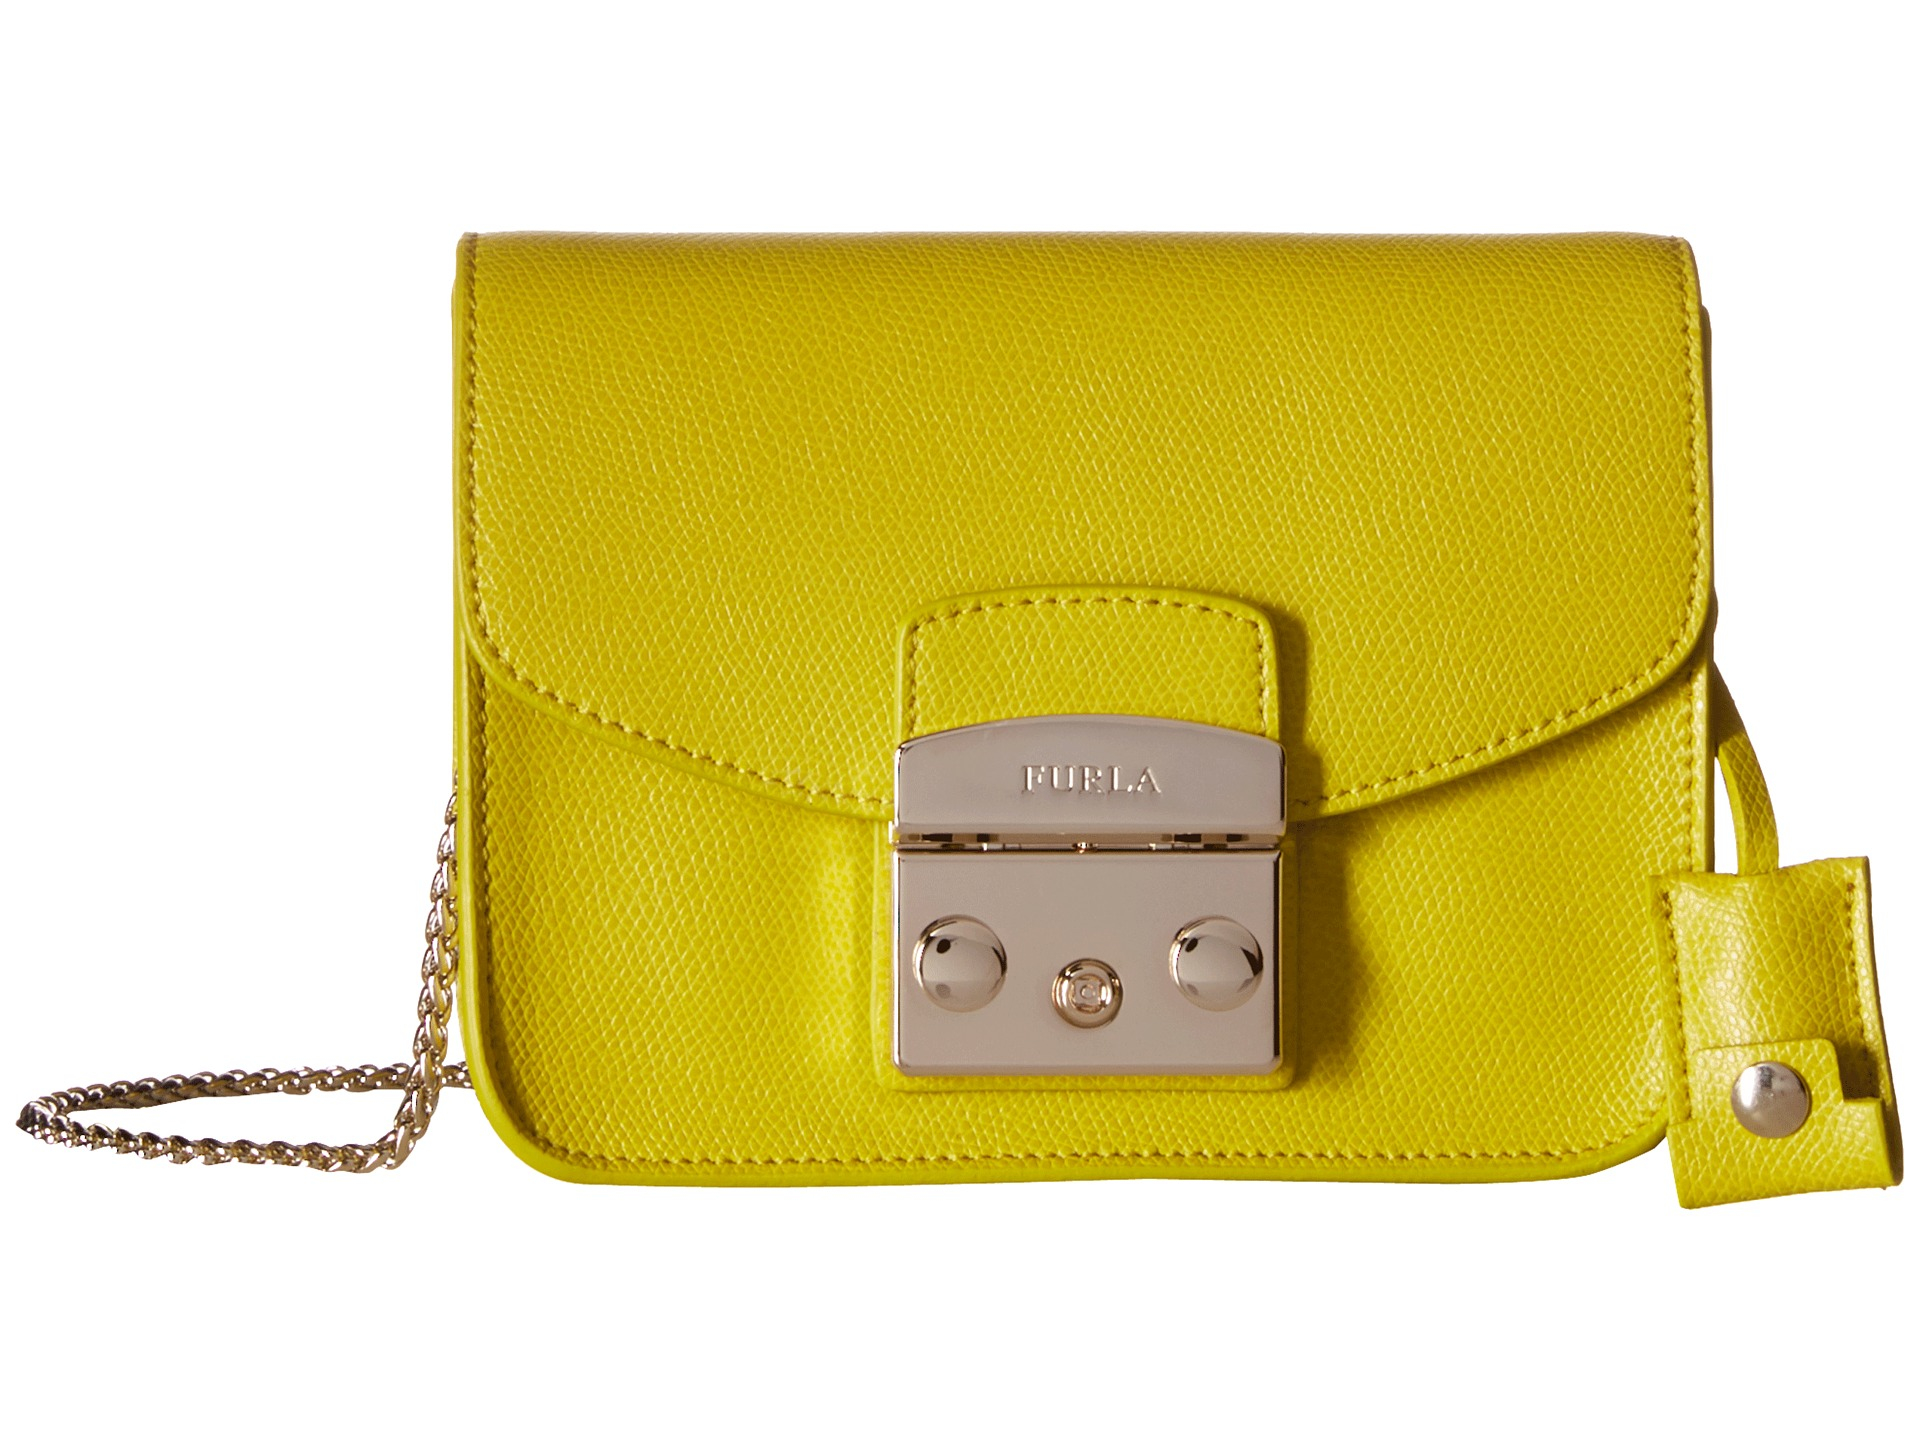 first look special section later Furla Leather Metropolis Mini Crossbody in Jade (Yellow) - Lyst